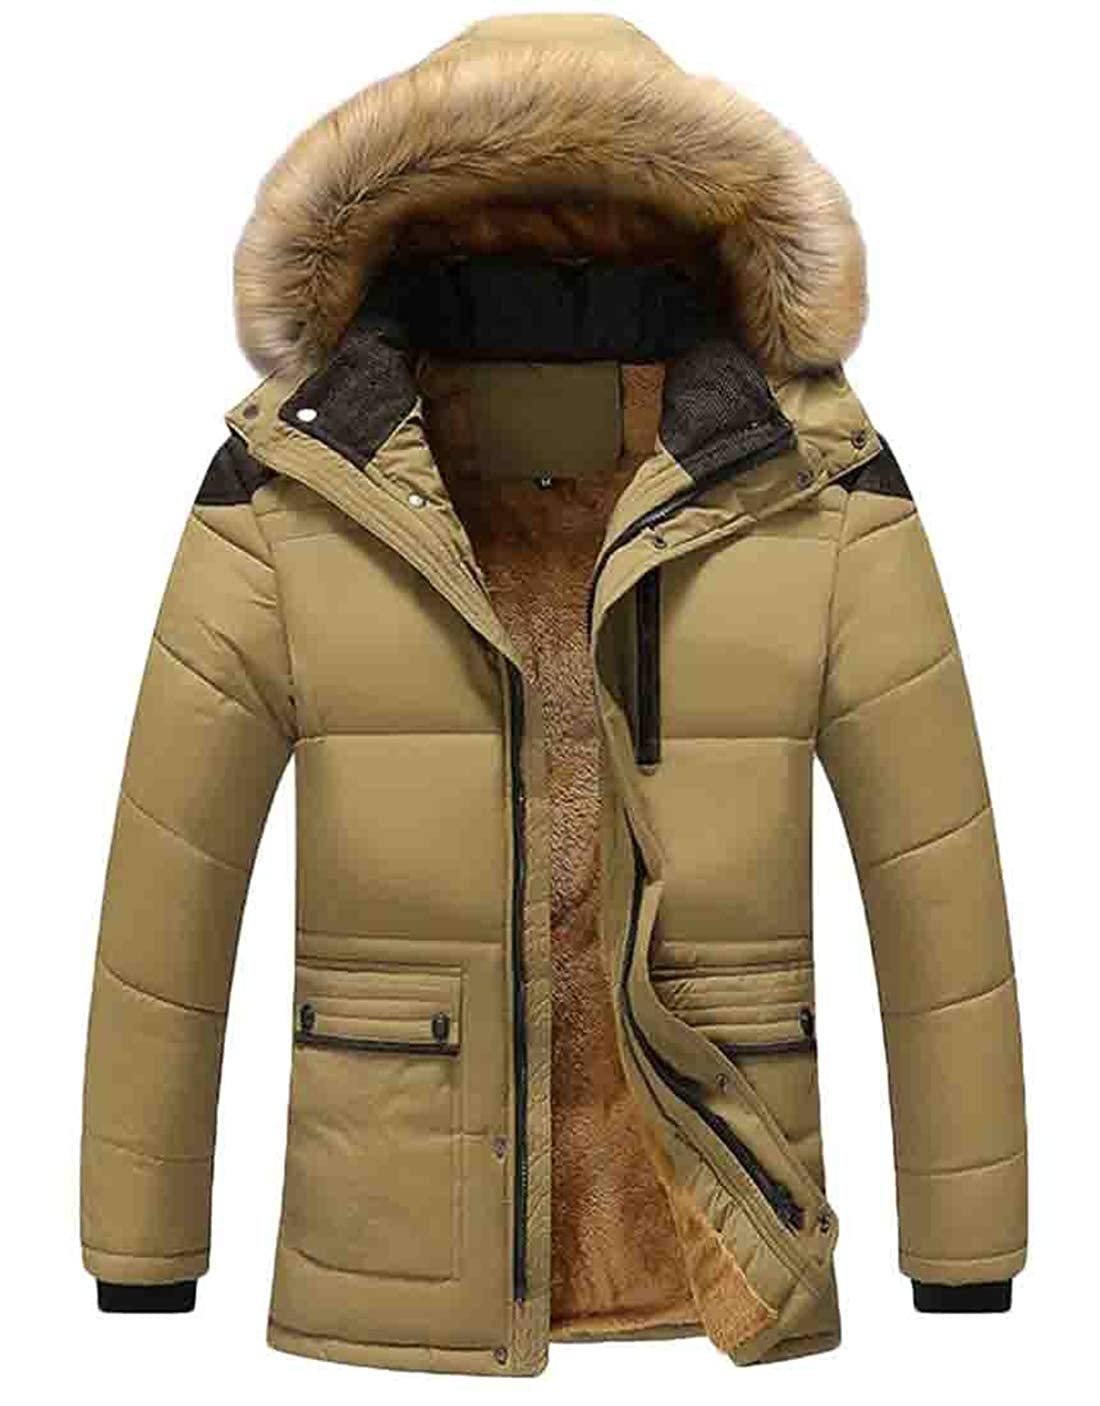 X-Future Men's Winter Hooded Thicken Warm Faux Fur Collar Fleece Lined Down Jacket